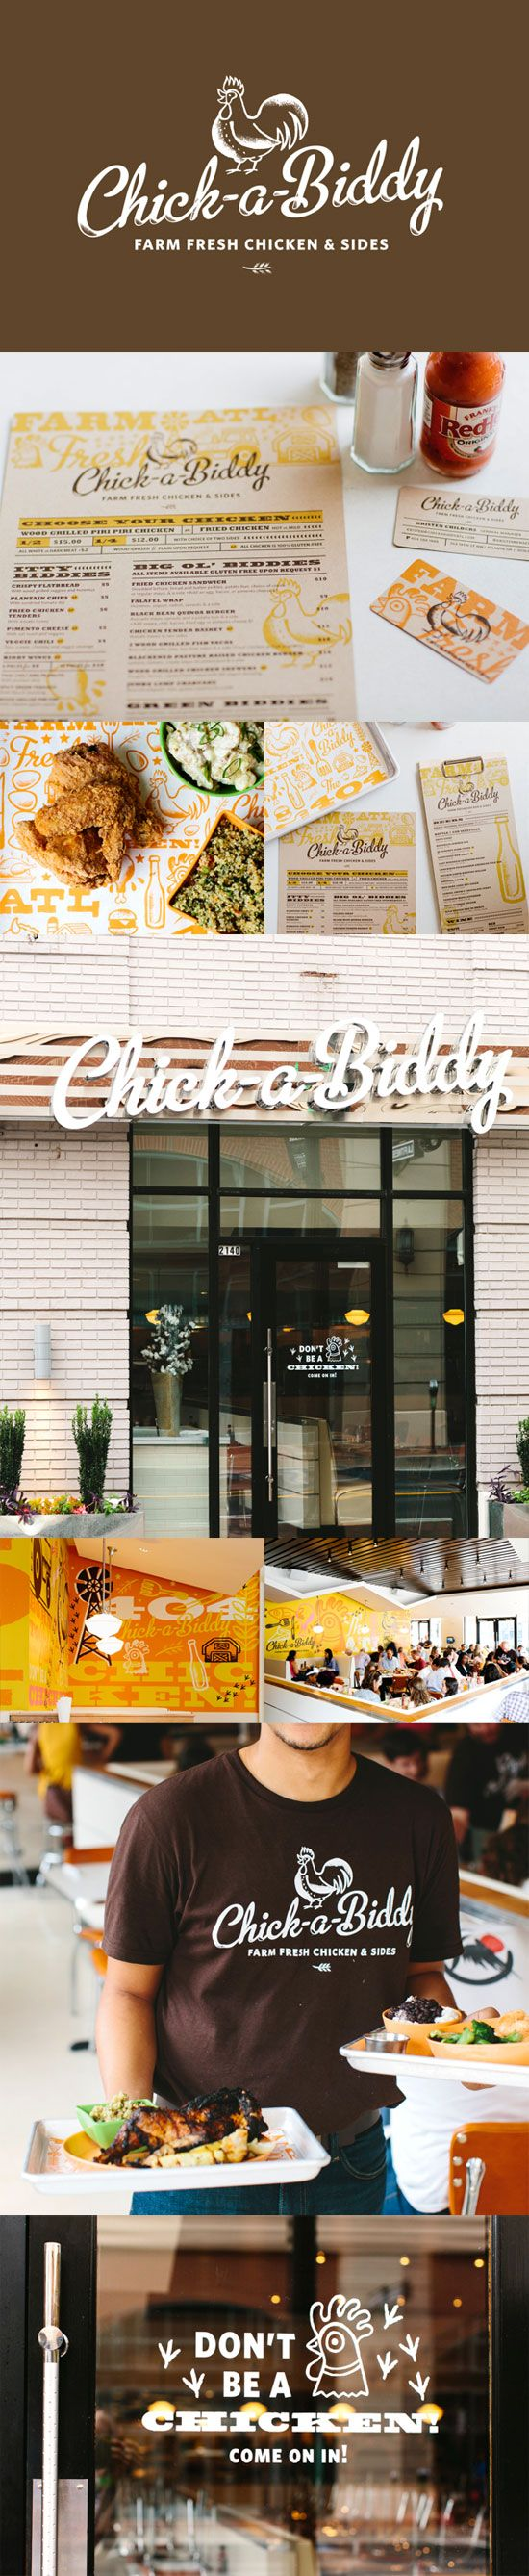 """Chick a Biddy"" - 55 Brand Identity Design Examples for Restaurant 